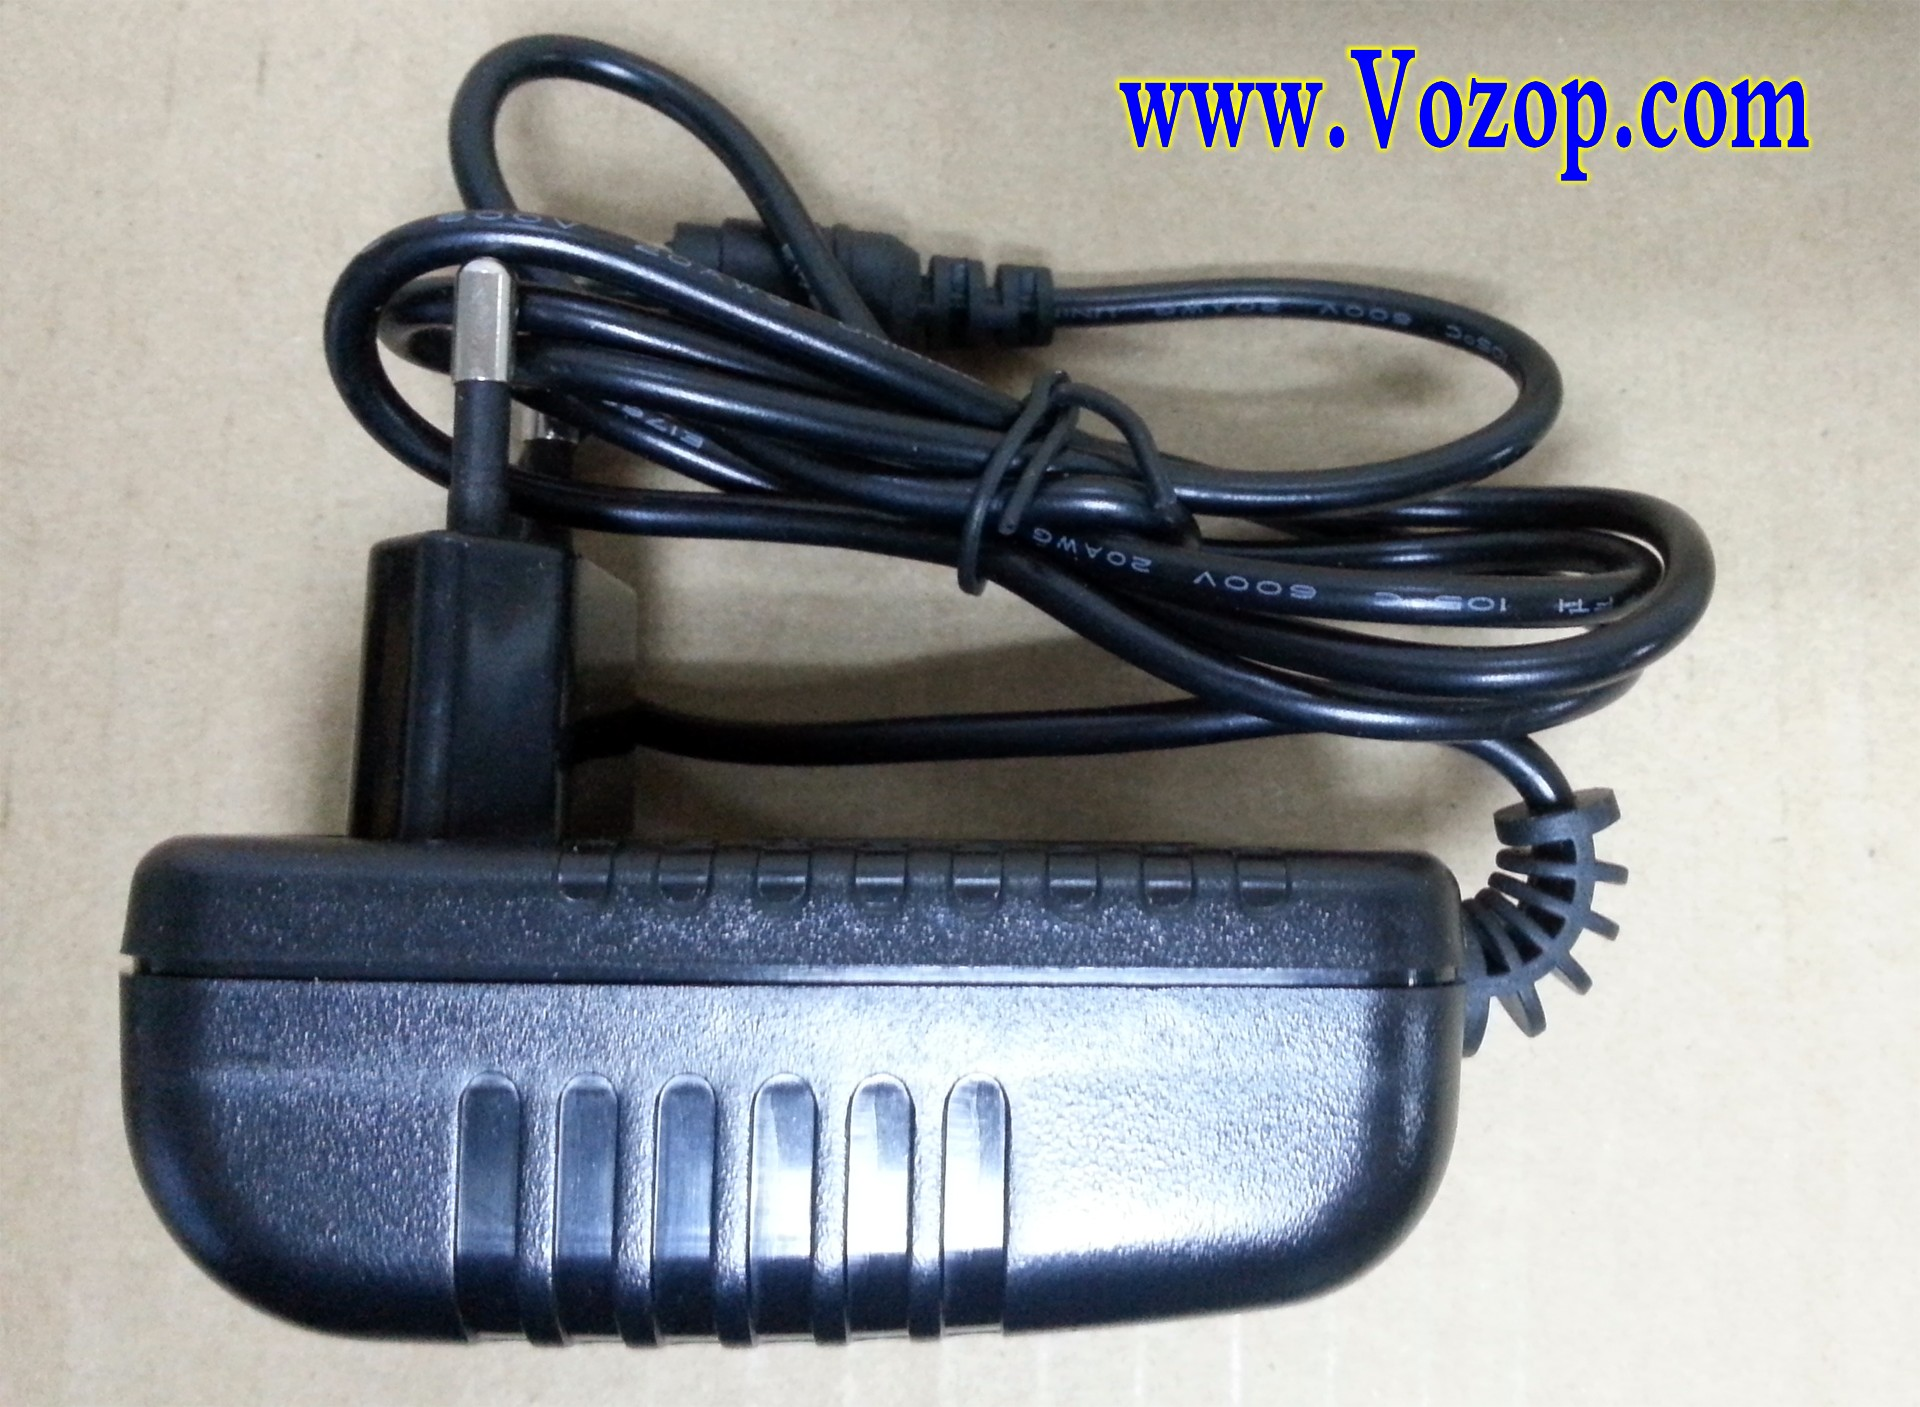 DC_12V_24W_2A_Power_Supply_adapter_with_euro_plug